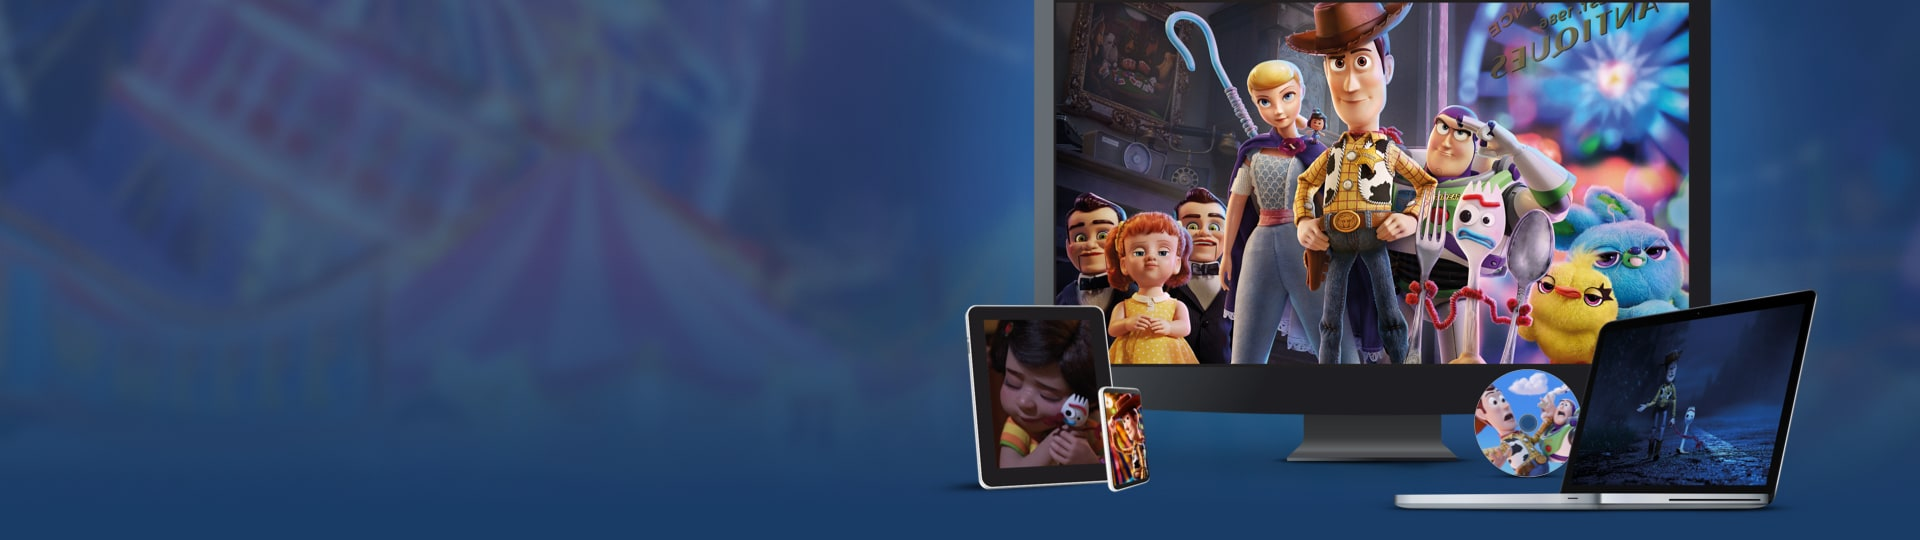 Toy Story 4 | Home Ents Digital